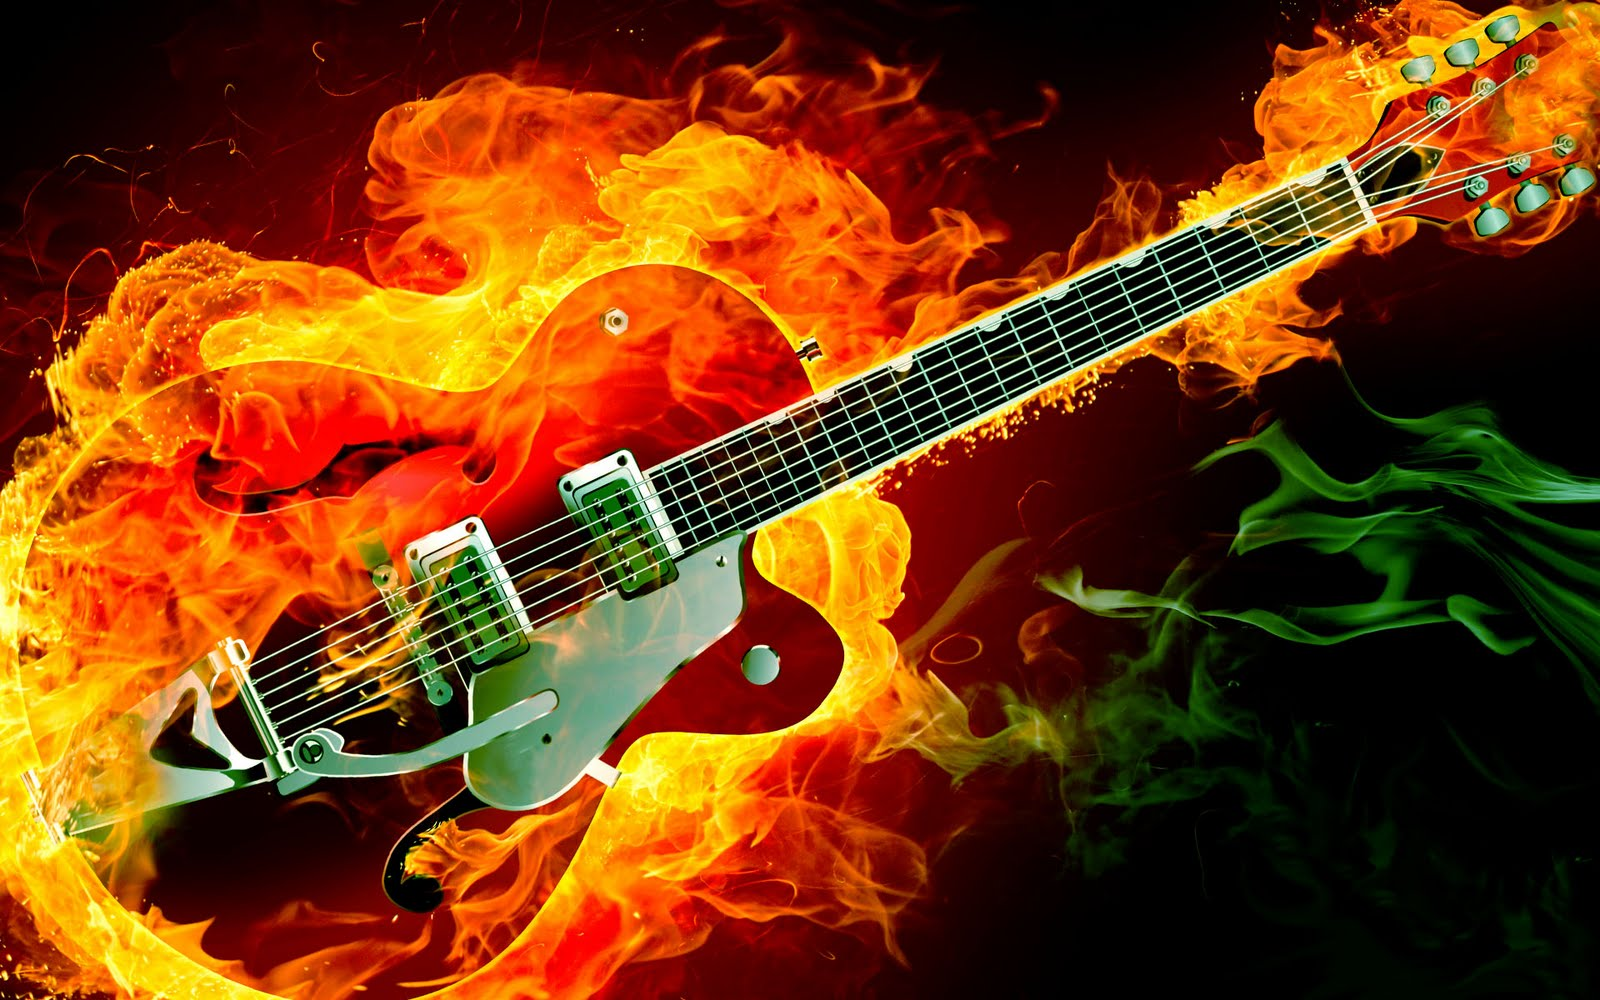 http://2.bp.blogspot.com/-vAGxl3vffKs/Tfk3vBHdqdI/AAAAAAAAAn4/QQ2ykQRColM/s1600/Electric+Rockabilly+Guitar+on+Fire+Red+Green+Smoke+Flames+HD+Music+Desktop+Wallpaper+1920x1200+Great+Guitar+Sound+www.GreatGuitarSound.jpg